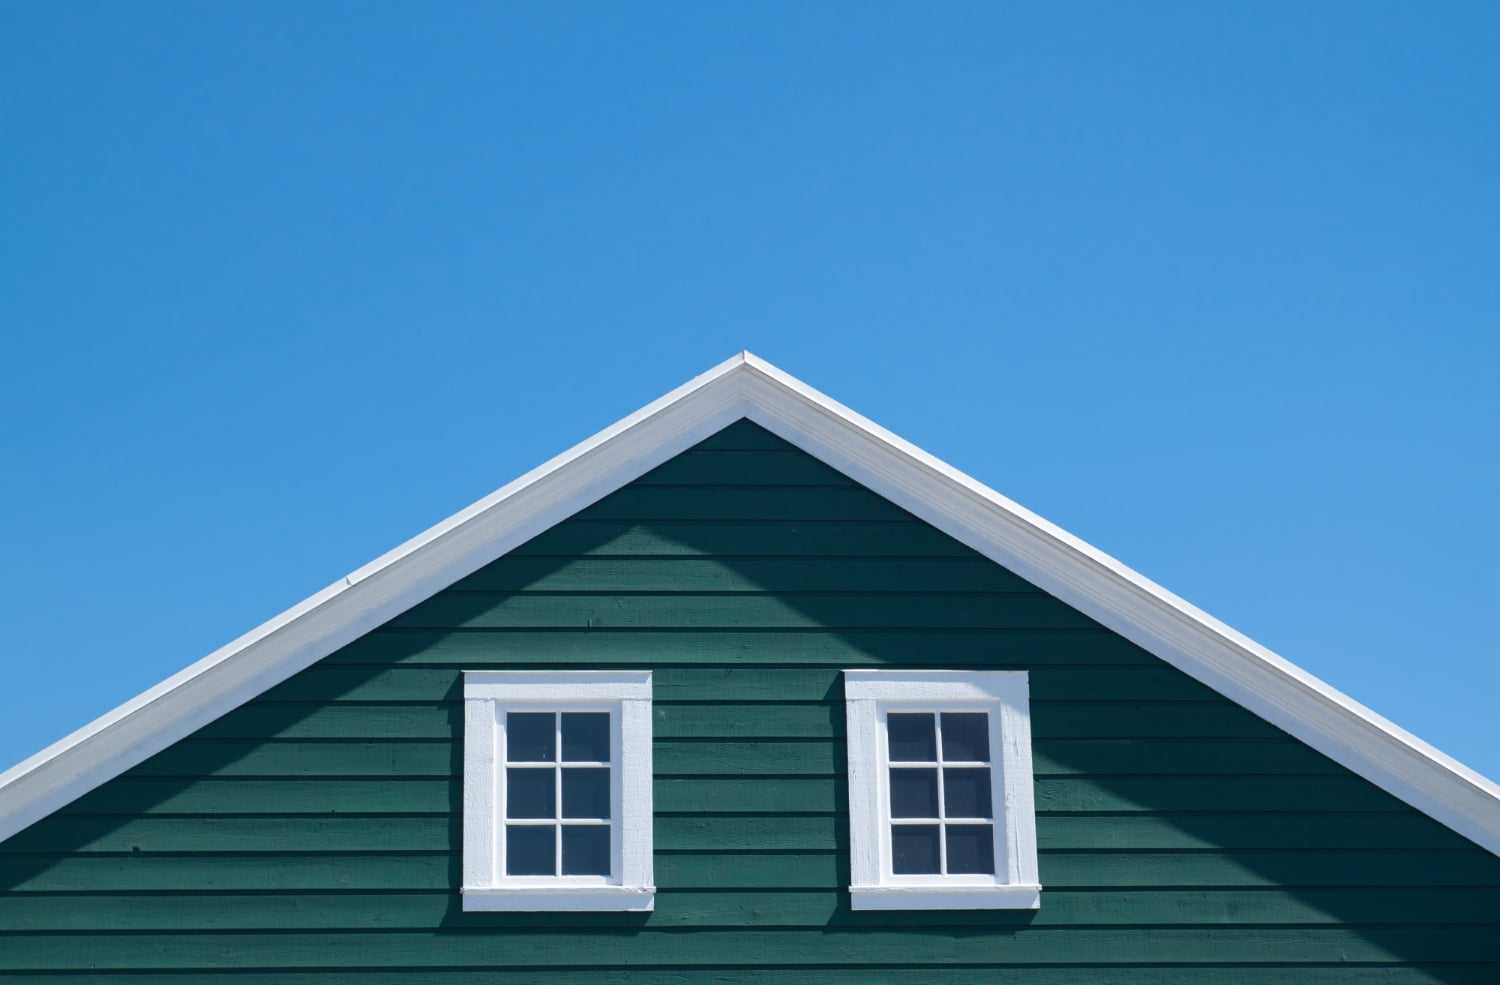 Home Pressure Washing Services Provide Clean House Siding Wall